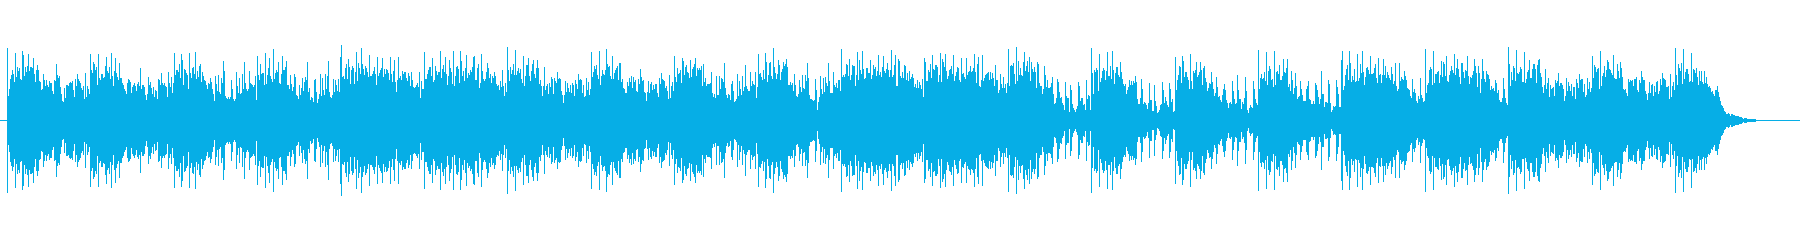 Refreshing healing music's reproduced waveform